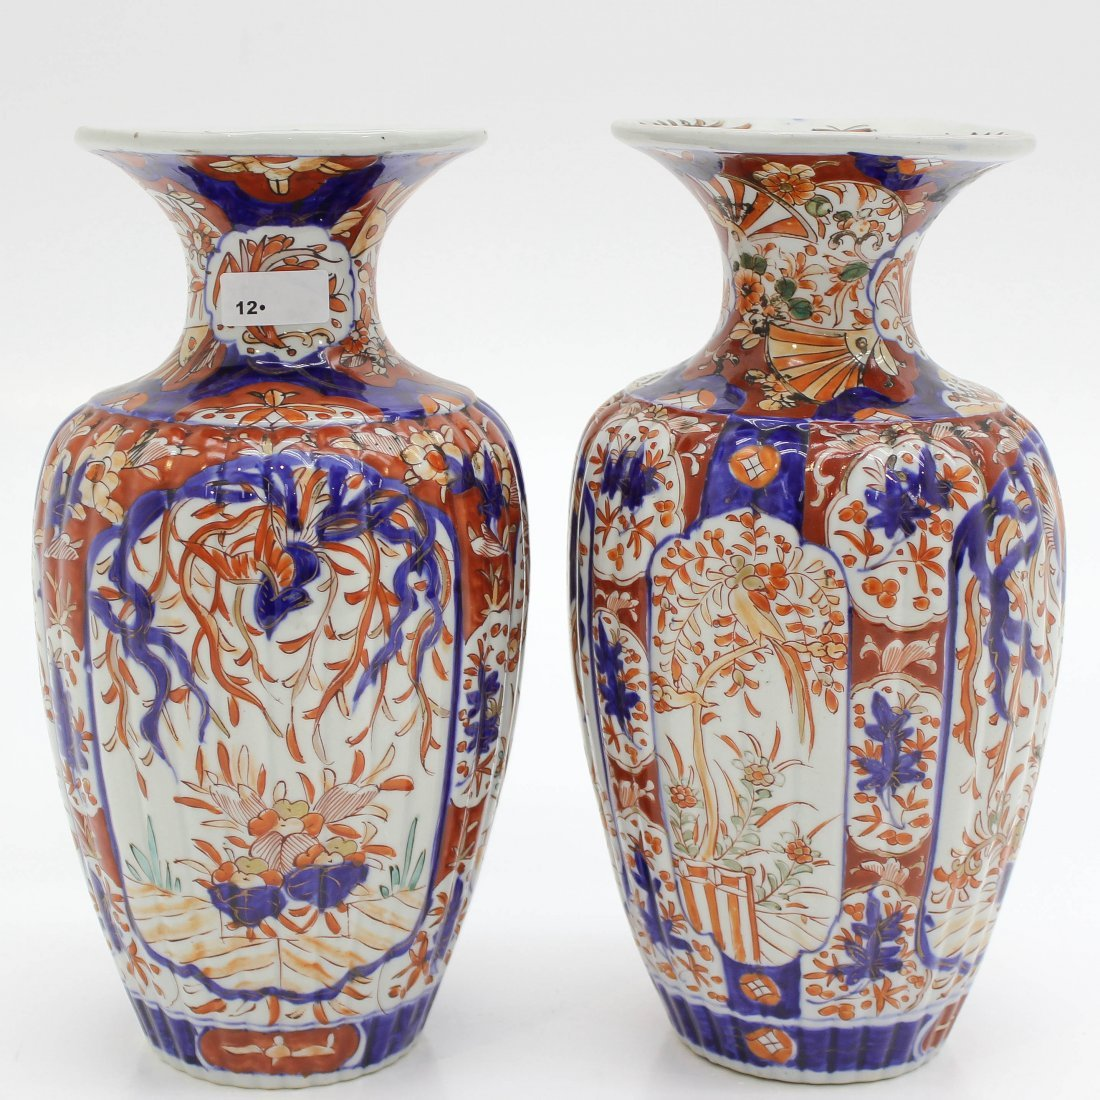 2 19th Century Japanese Vases